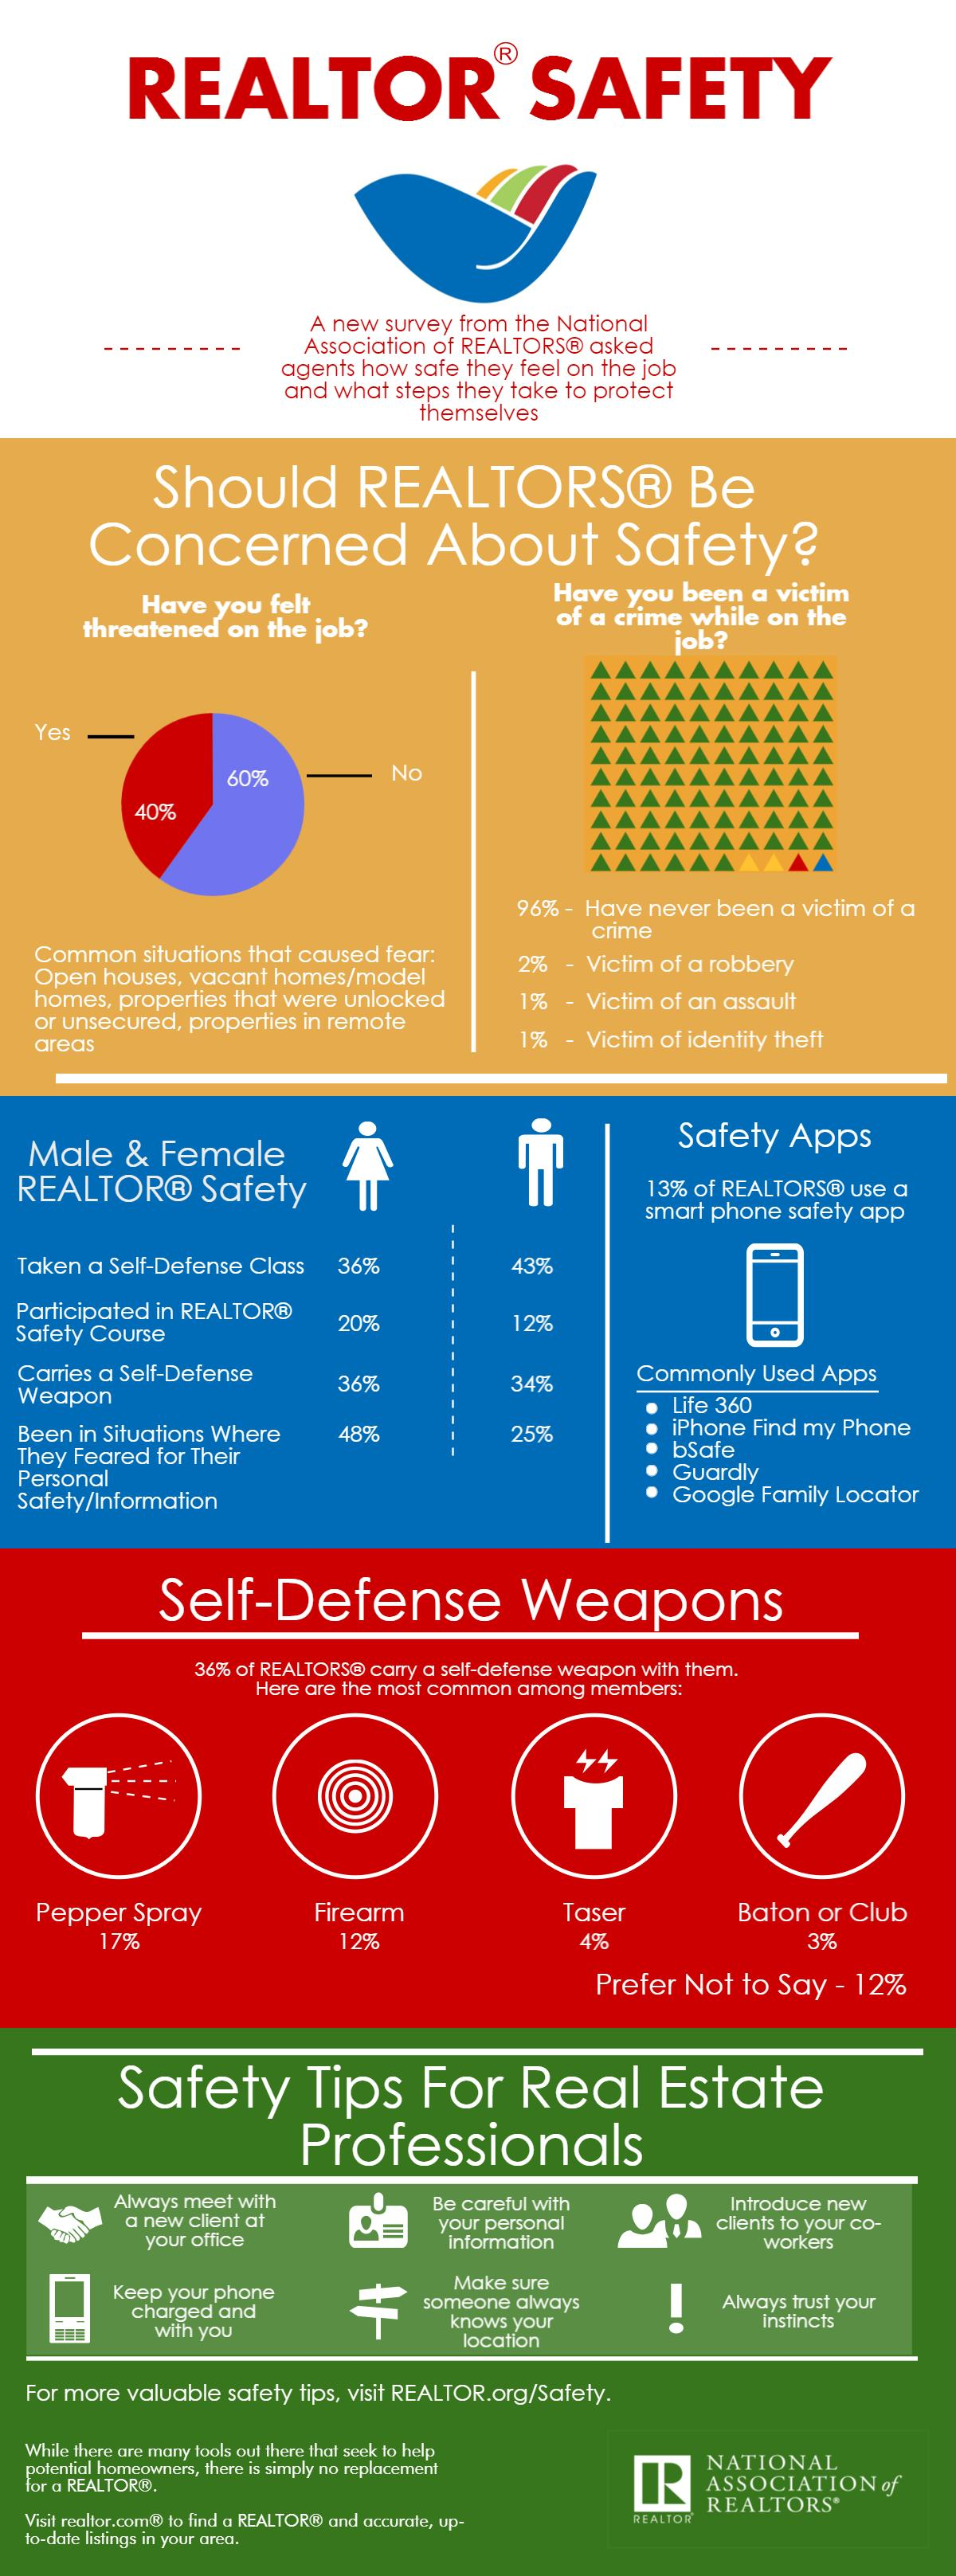 2015-realtor-safety-infographic-2015-03-02